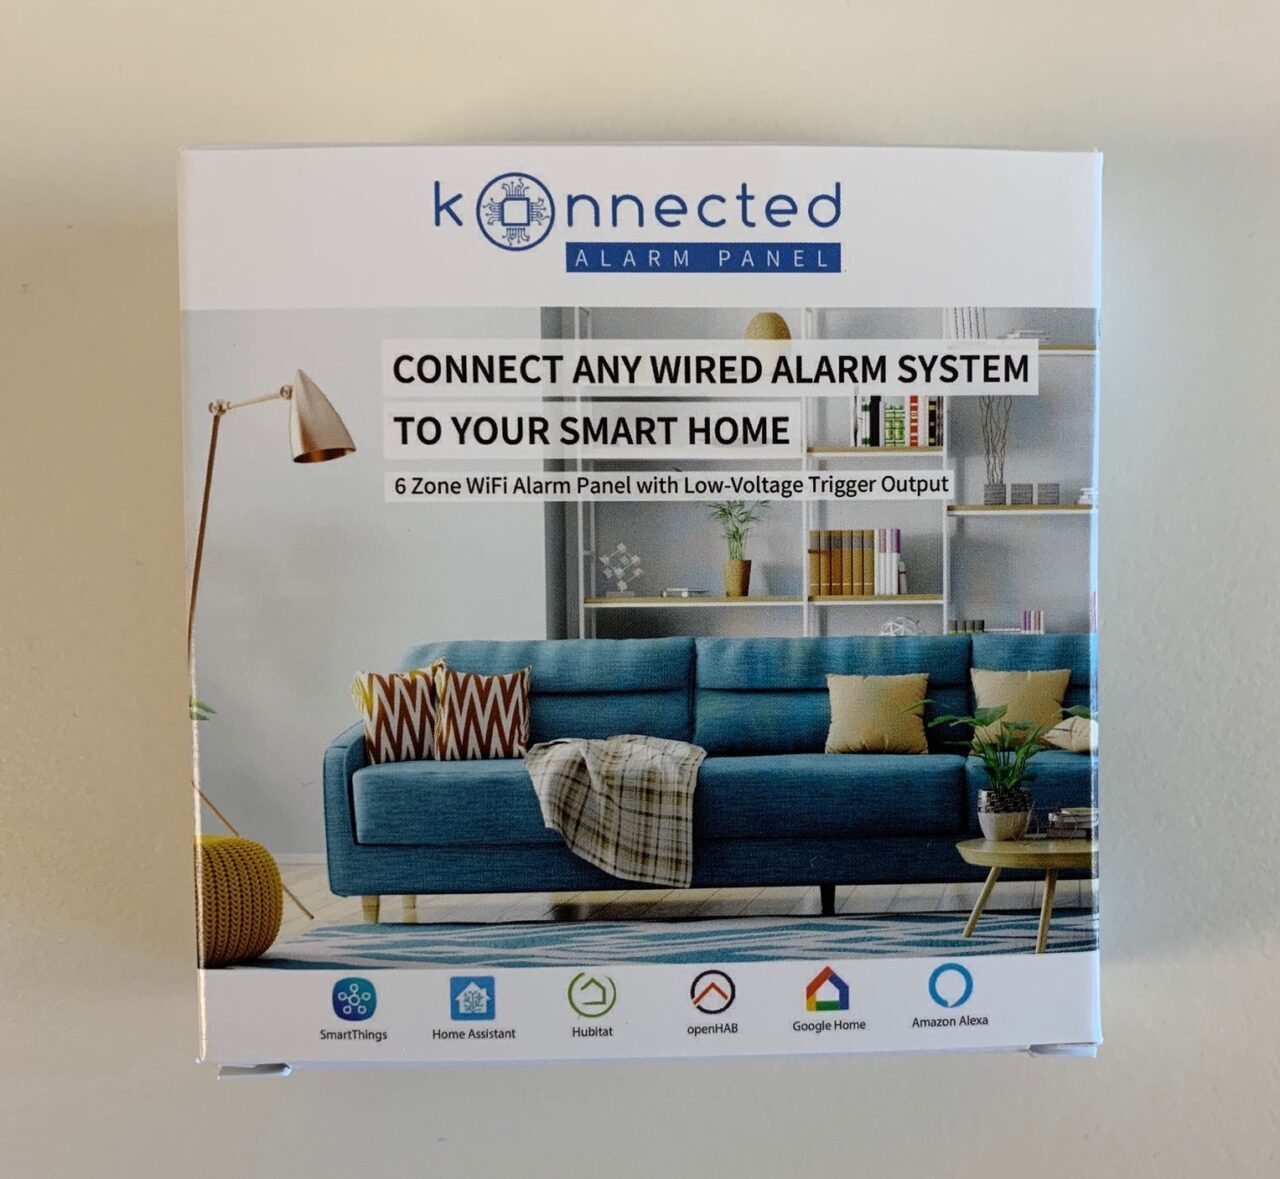 Konnected Alarm Panel Review